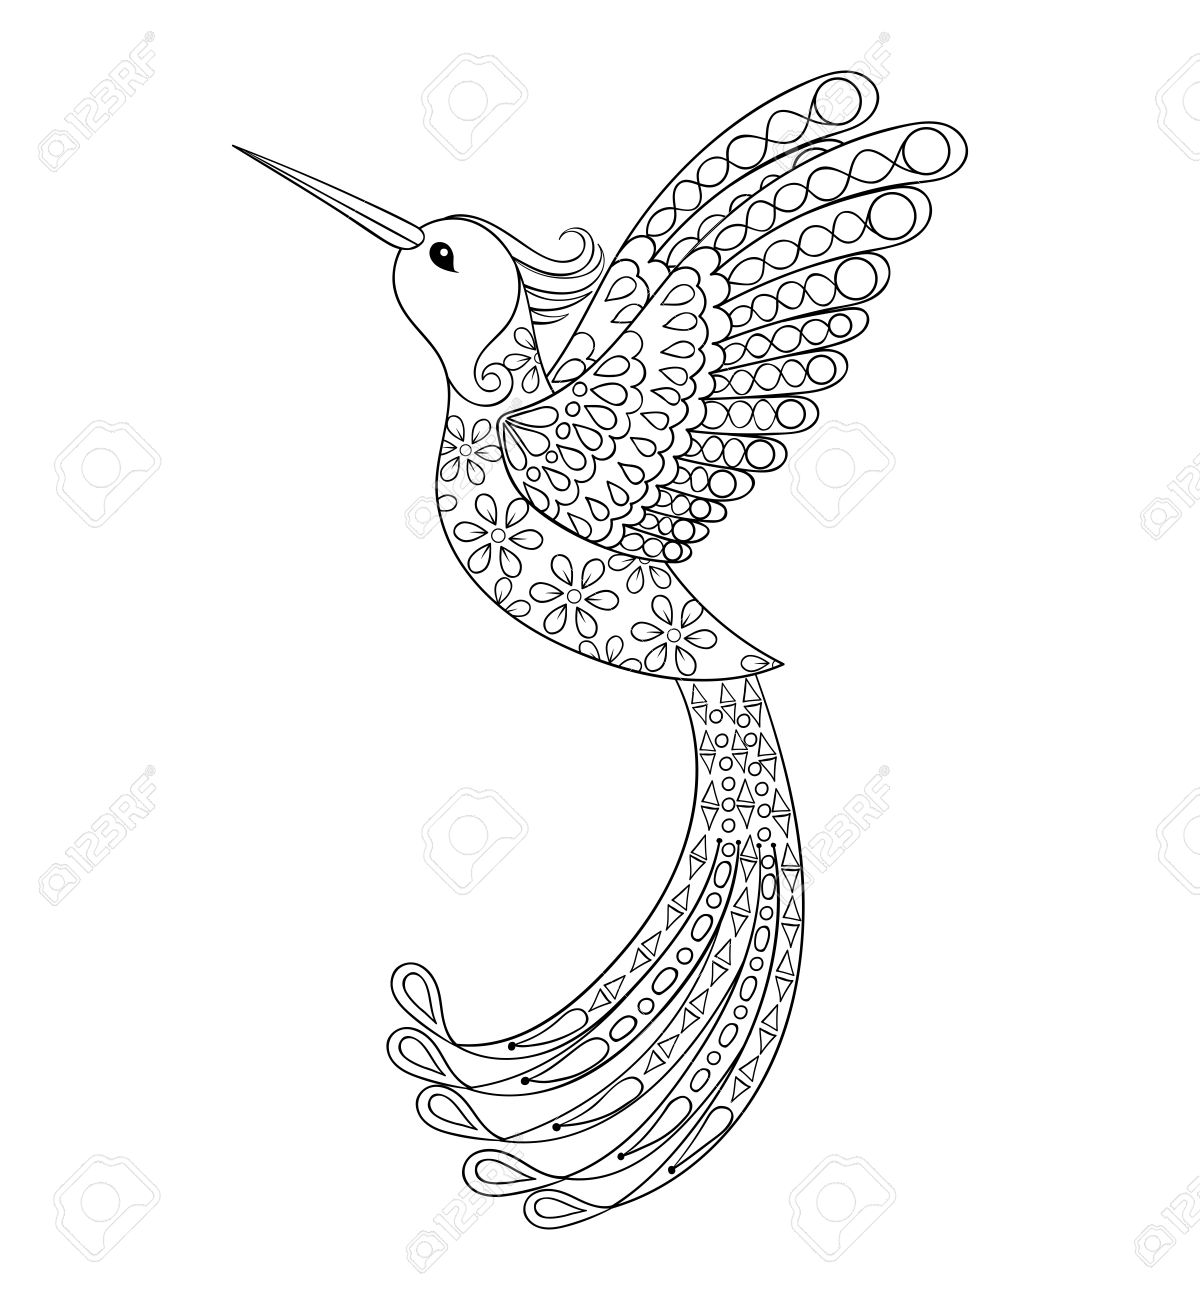 Vector zentangle tribal hummingbird flying bird totem for adult coloring page or tattoos with high details isolated on background